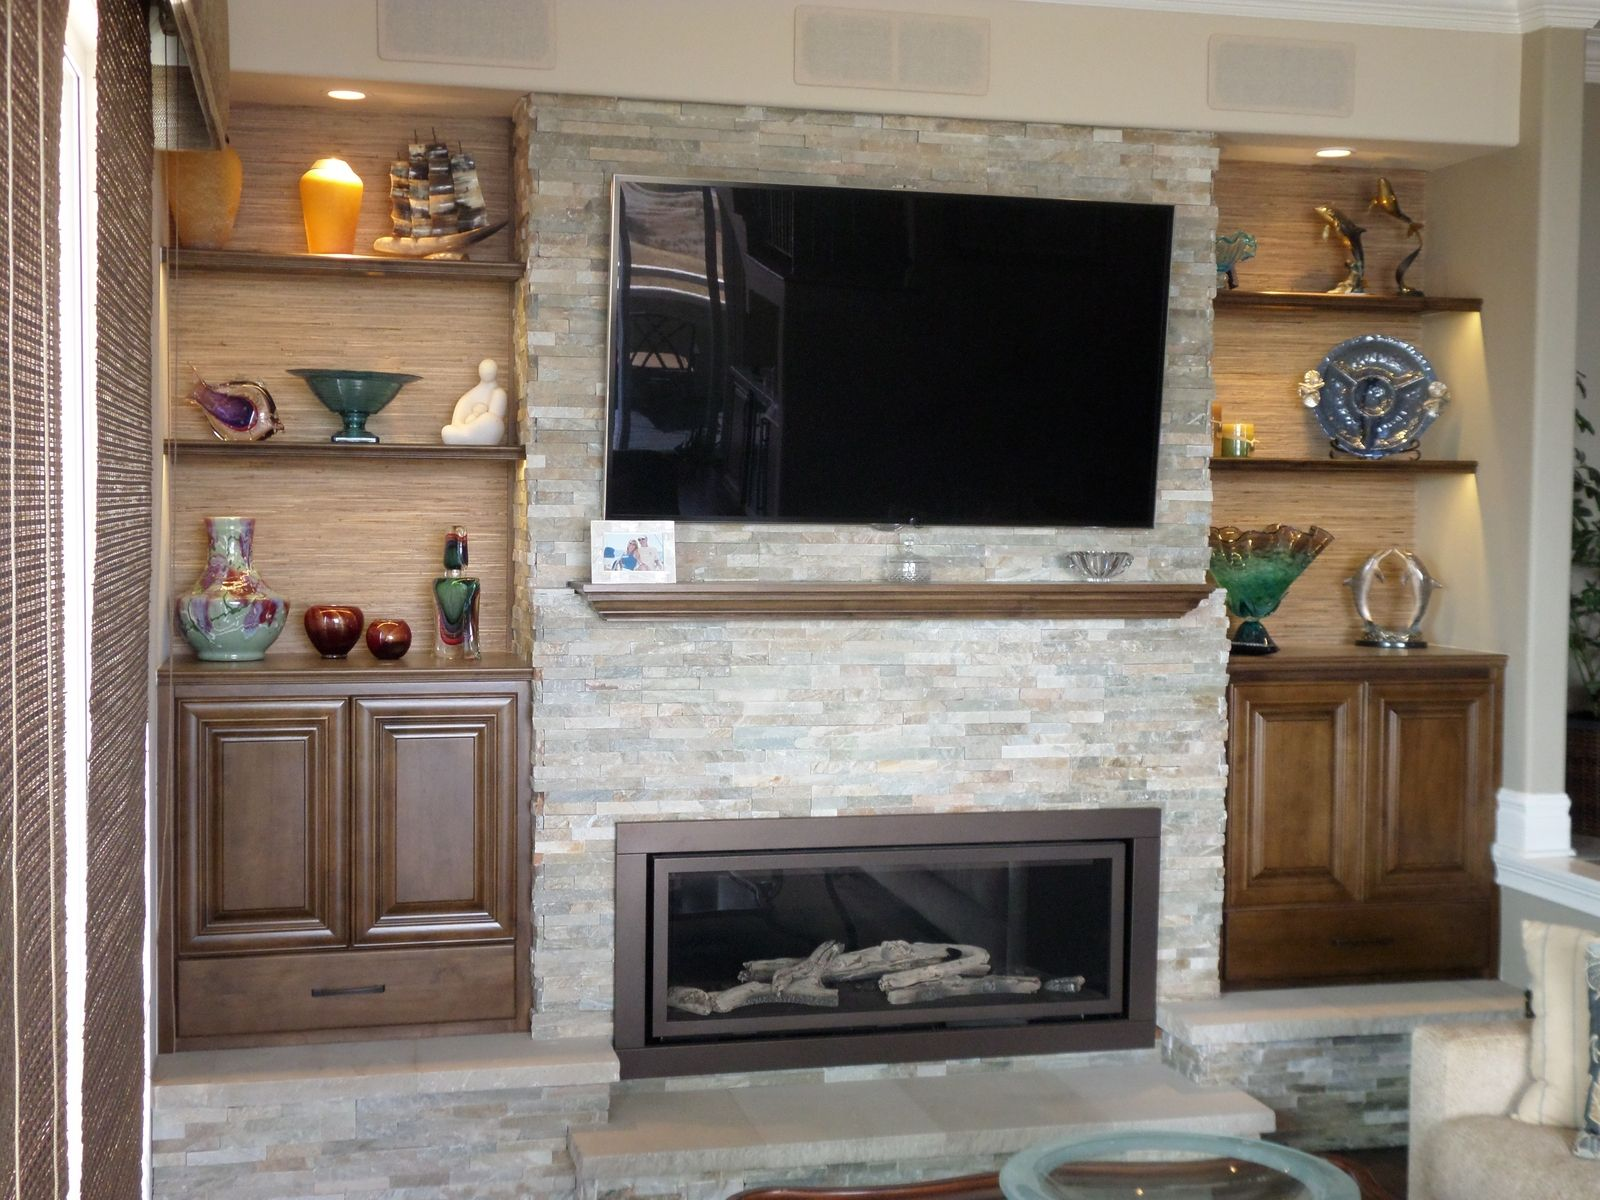 with bookshelves bookcases plans ins ideas mantel fireplace built around